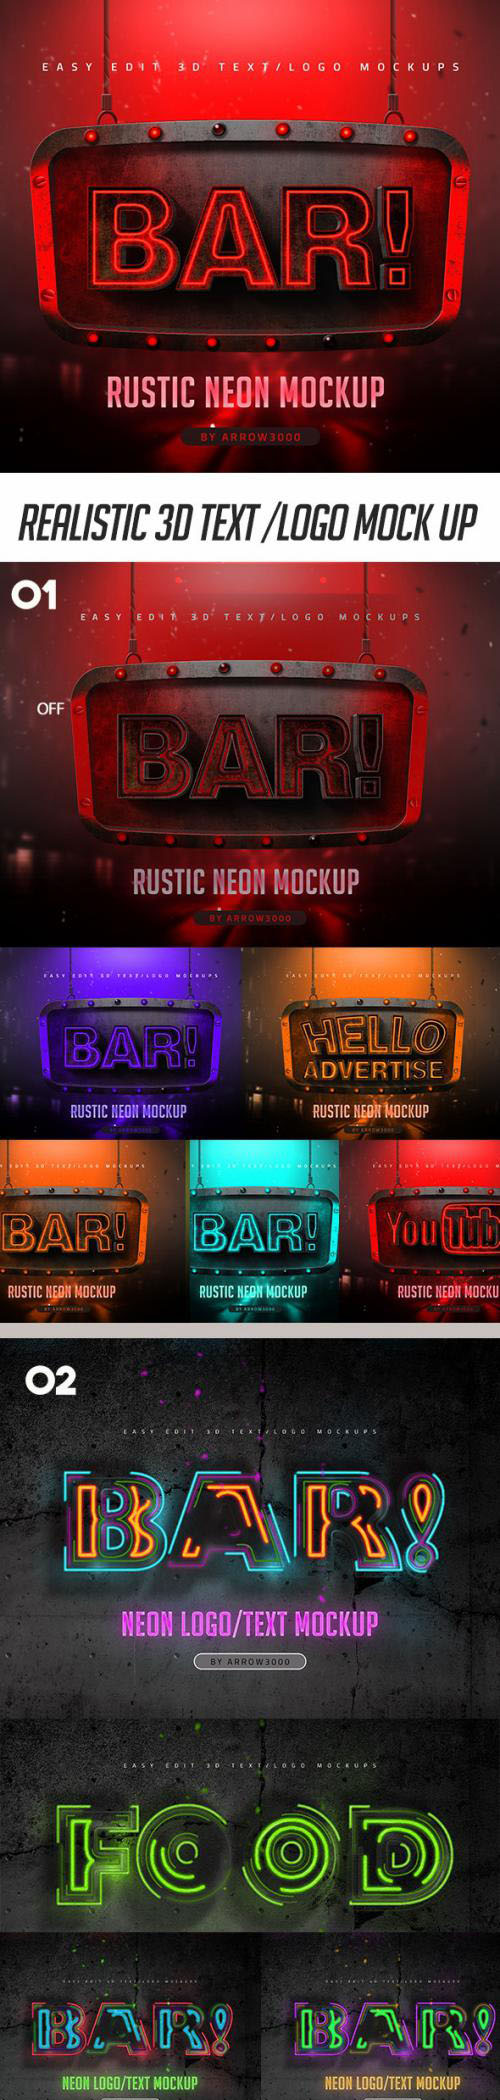 3D Text Logo Mockup- Neon Pack - 24989279